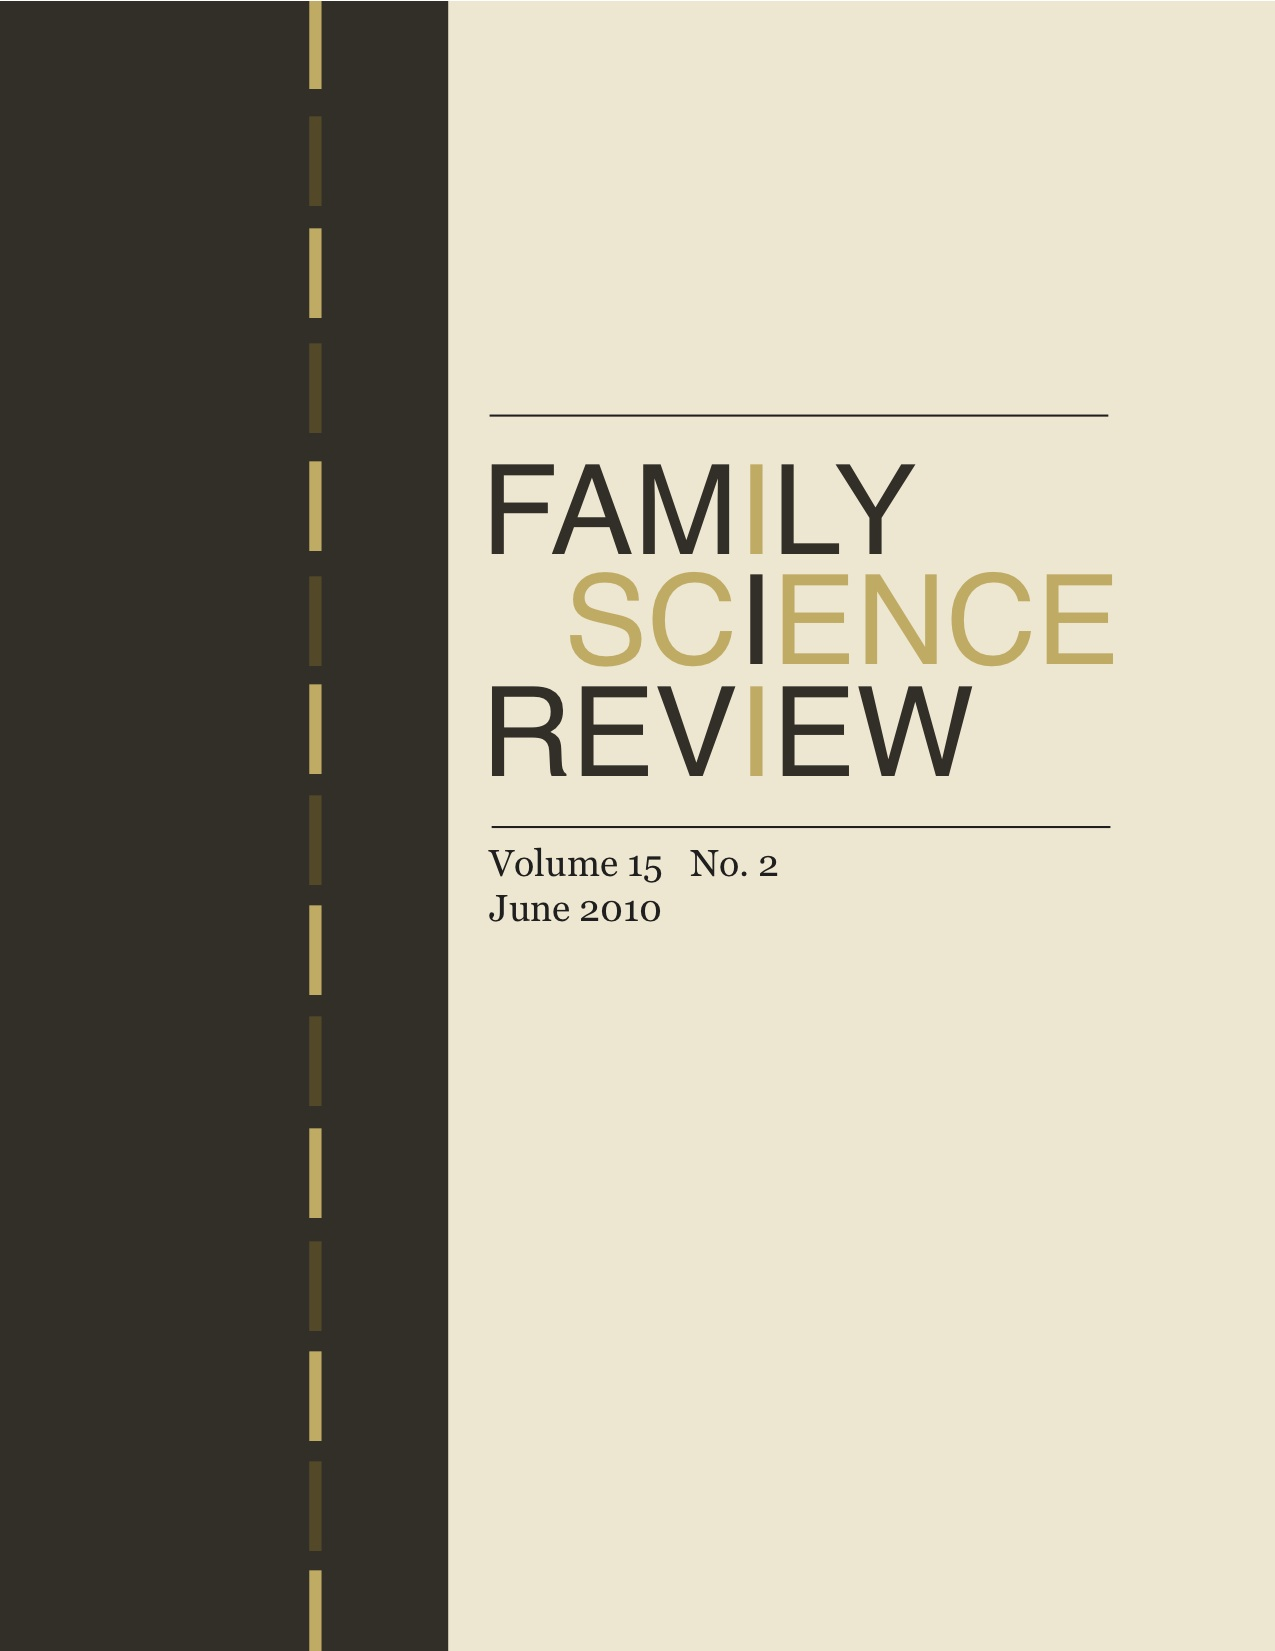 Family Science Review